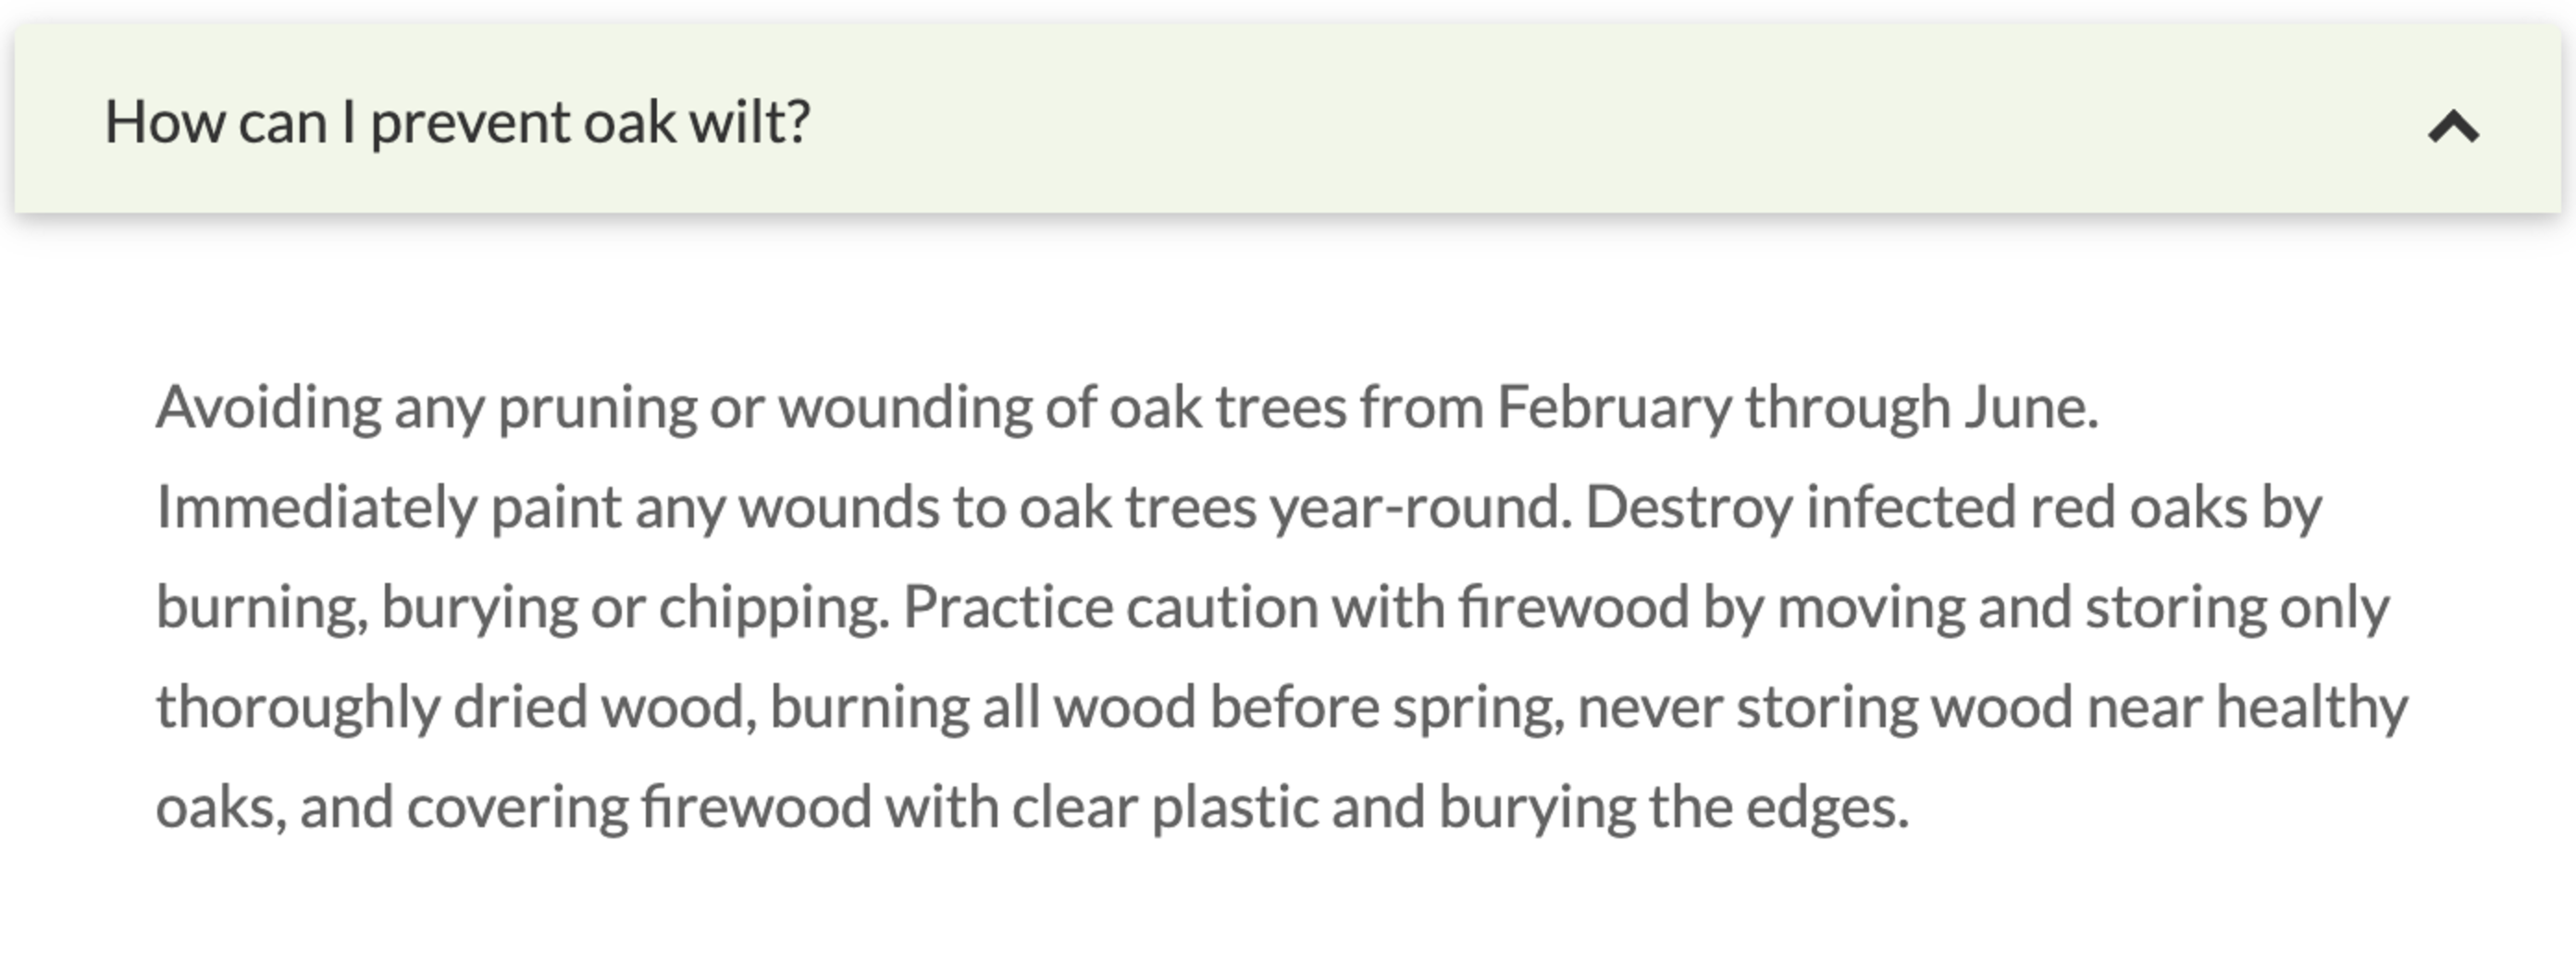 How can I prevent oak wilt?